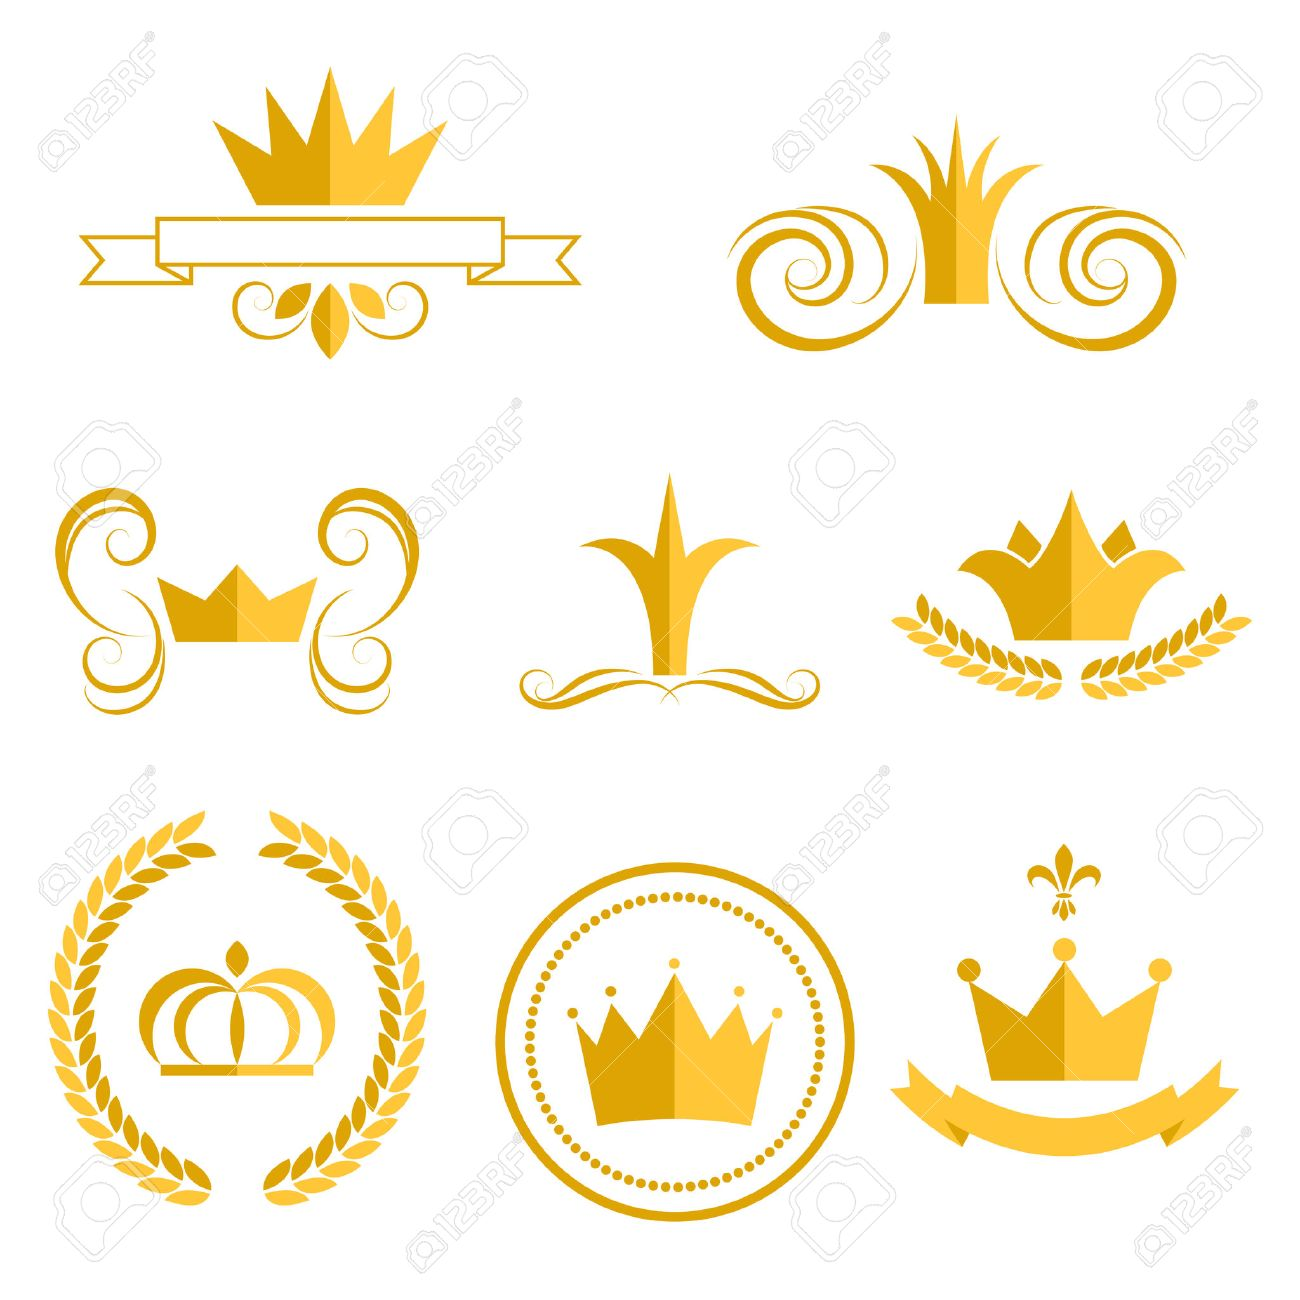 gold crown logos and badges clip art vector set king or queen rh 123rf com clip art princess crowns queen crowns clipart